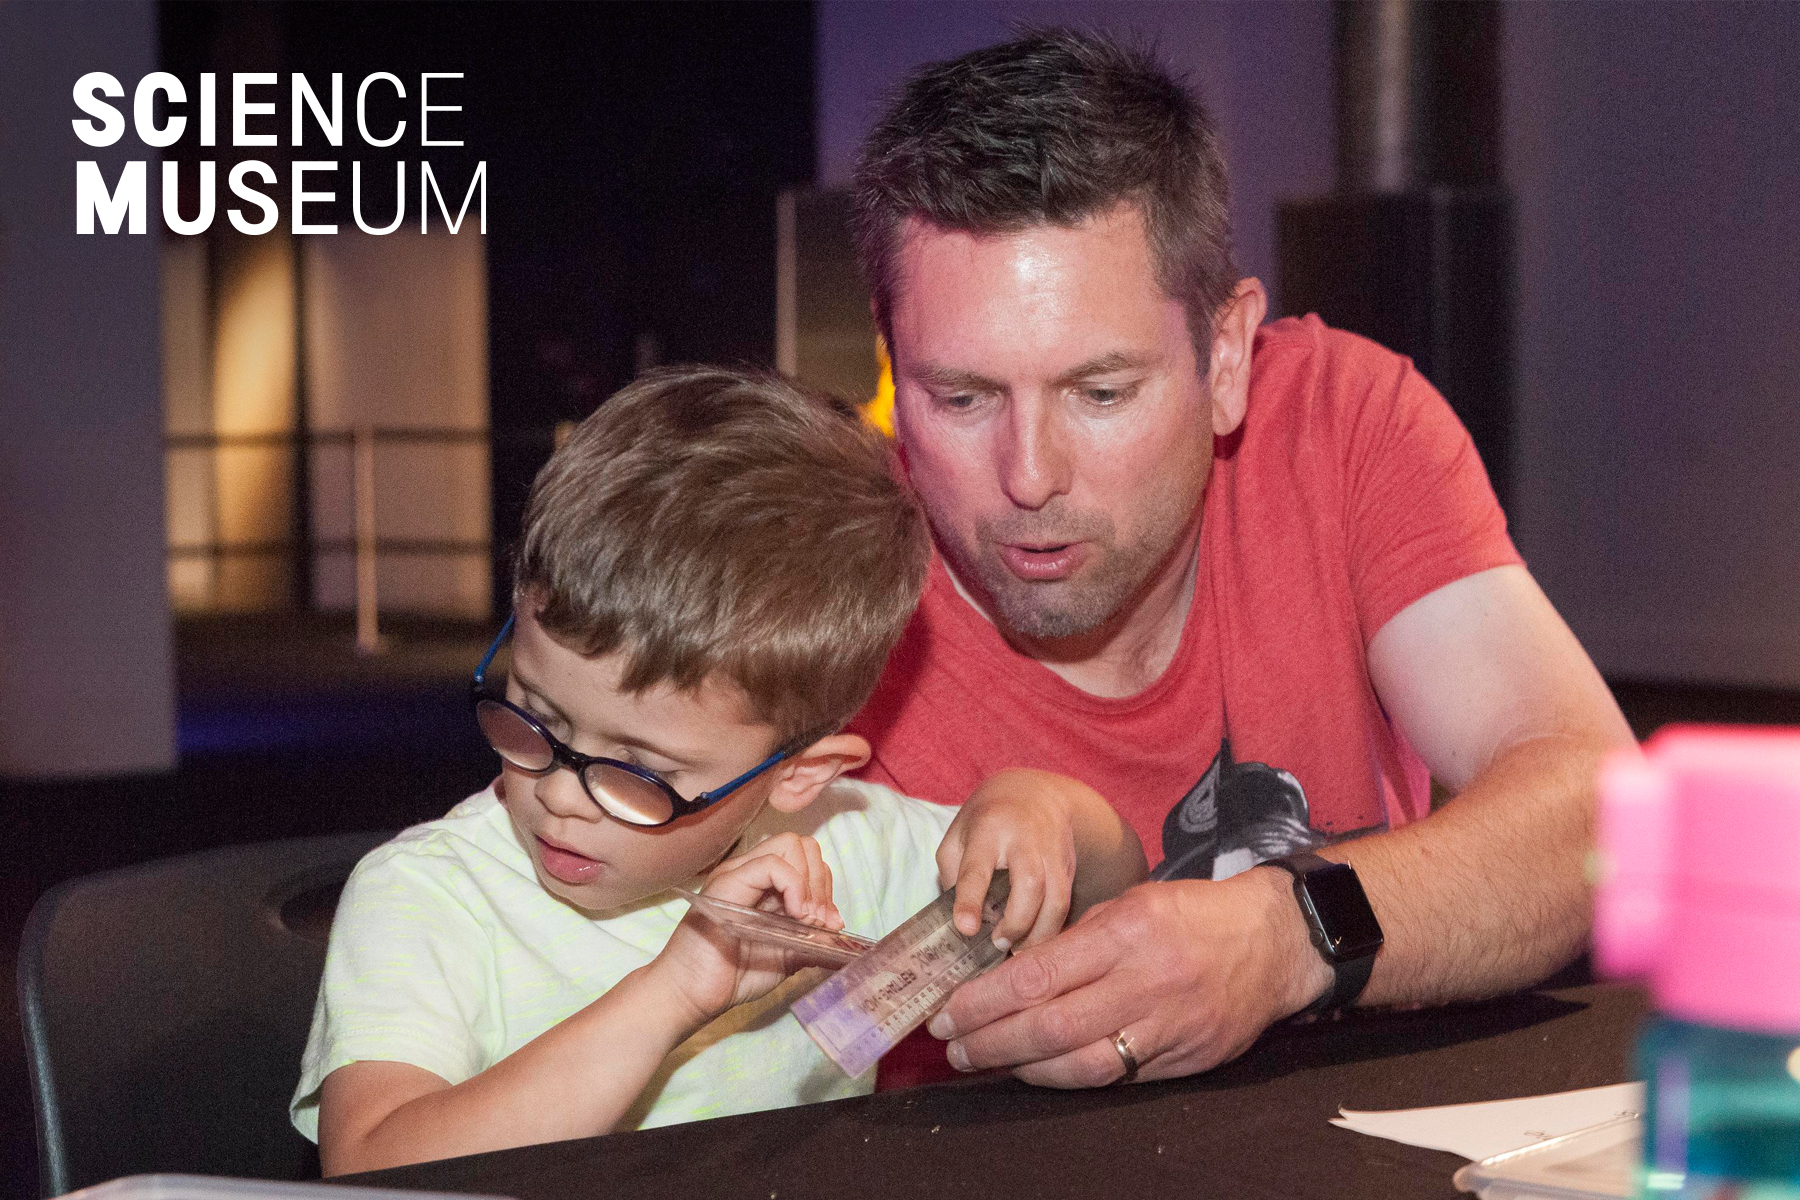 Image of a father and his son interacting at a Viscovery event